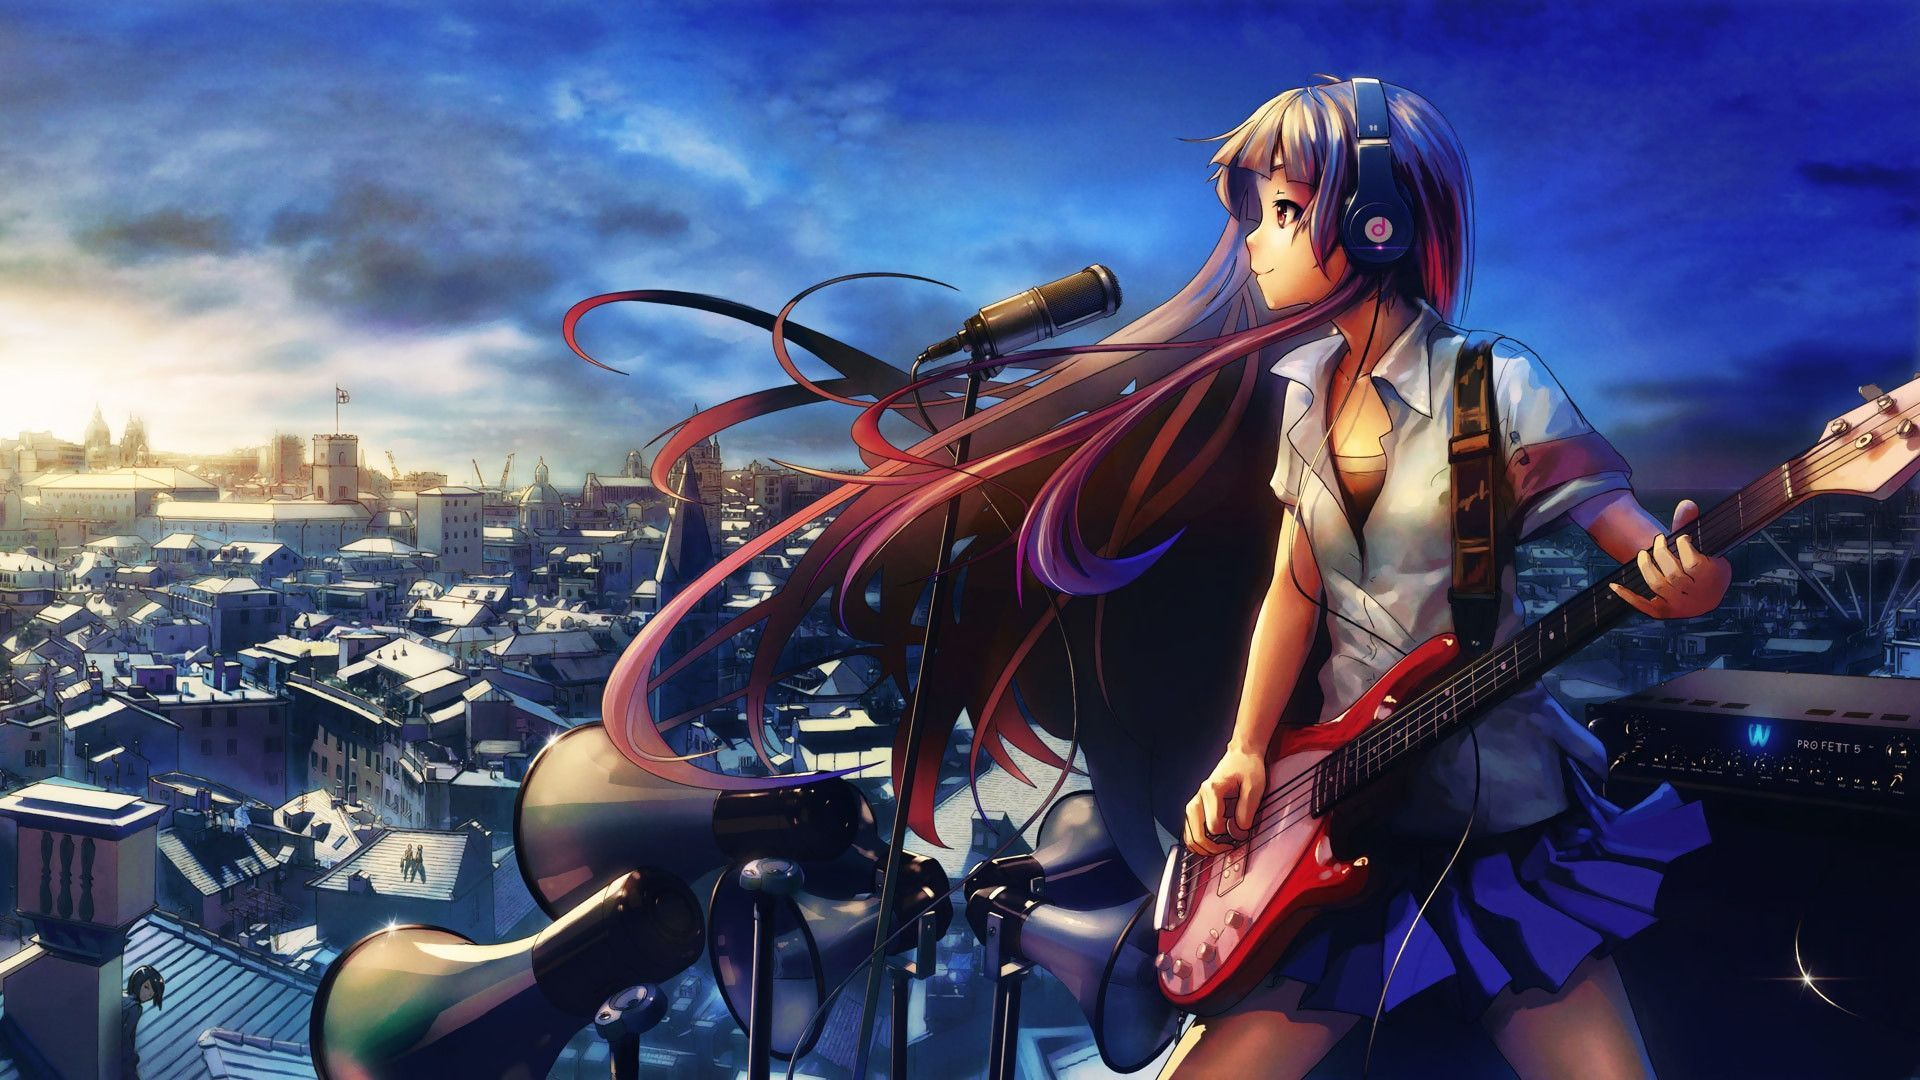 Wallpaper Anime Hd 1080p Pc Download Wallpaper 1920x1080 Girl Guitar Microphone Anime Wallpapers Hd 1080p Wal In 2020 Anime Wallpaper Hd Anime Wallpapers Anime Music